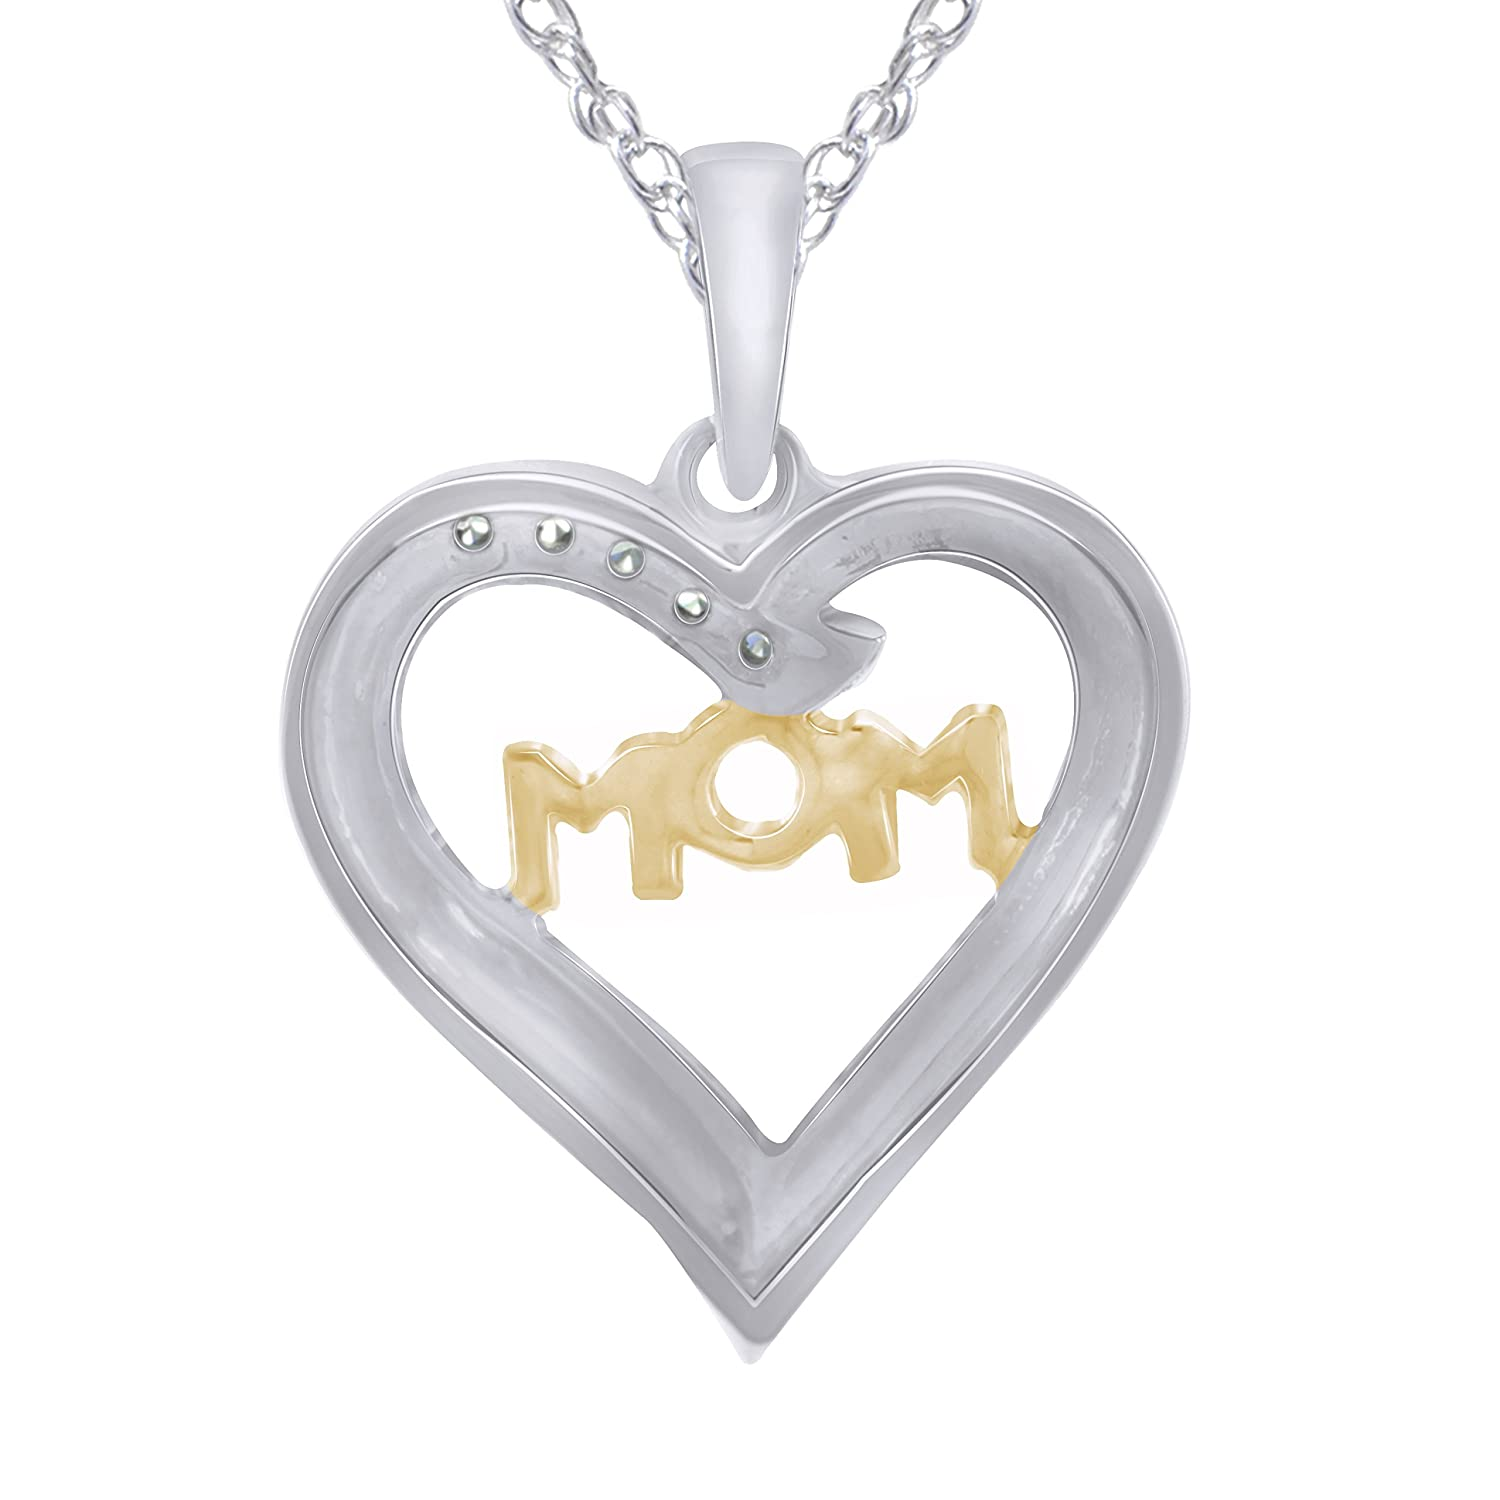 Pretty Jewels MOM in Heart 0.08 Carat Diamond Heart Necklace in 925 Sterling Silver 18 Rope Chain I1-I2 Yellow-Plated